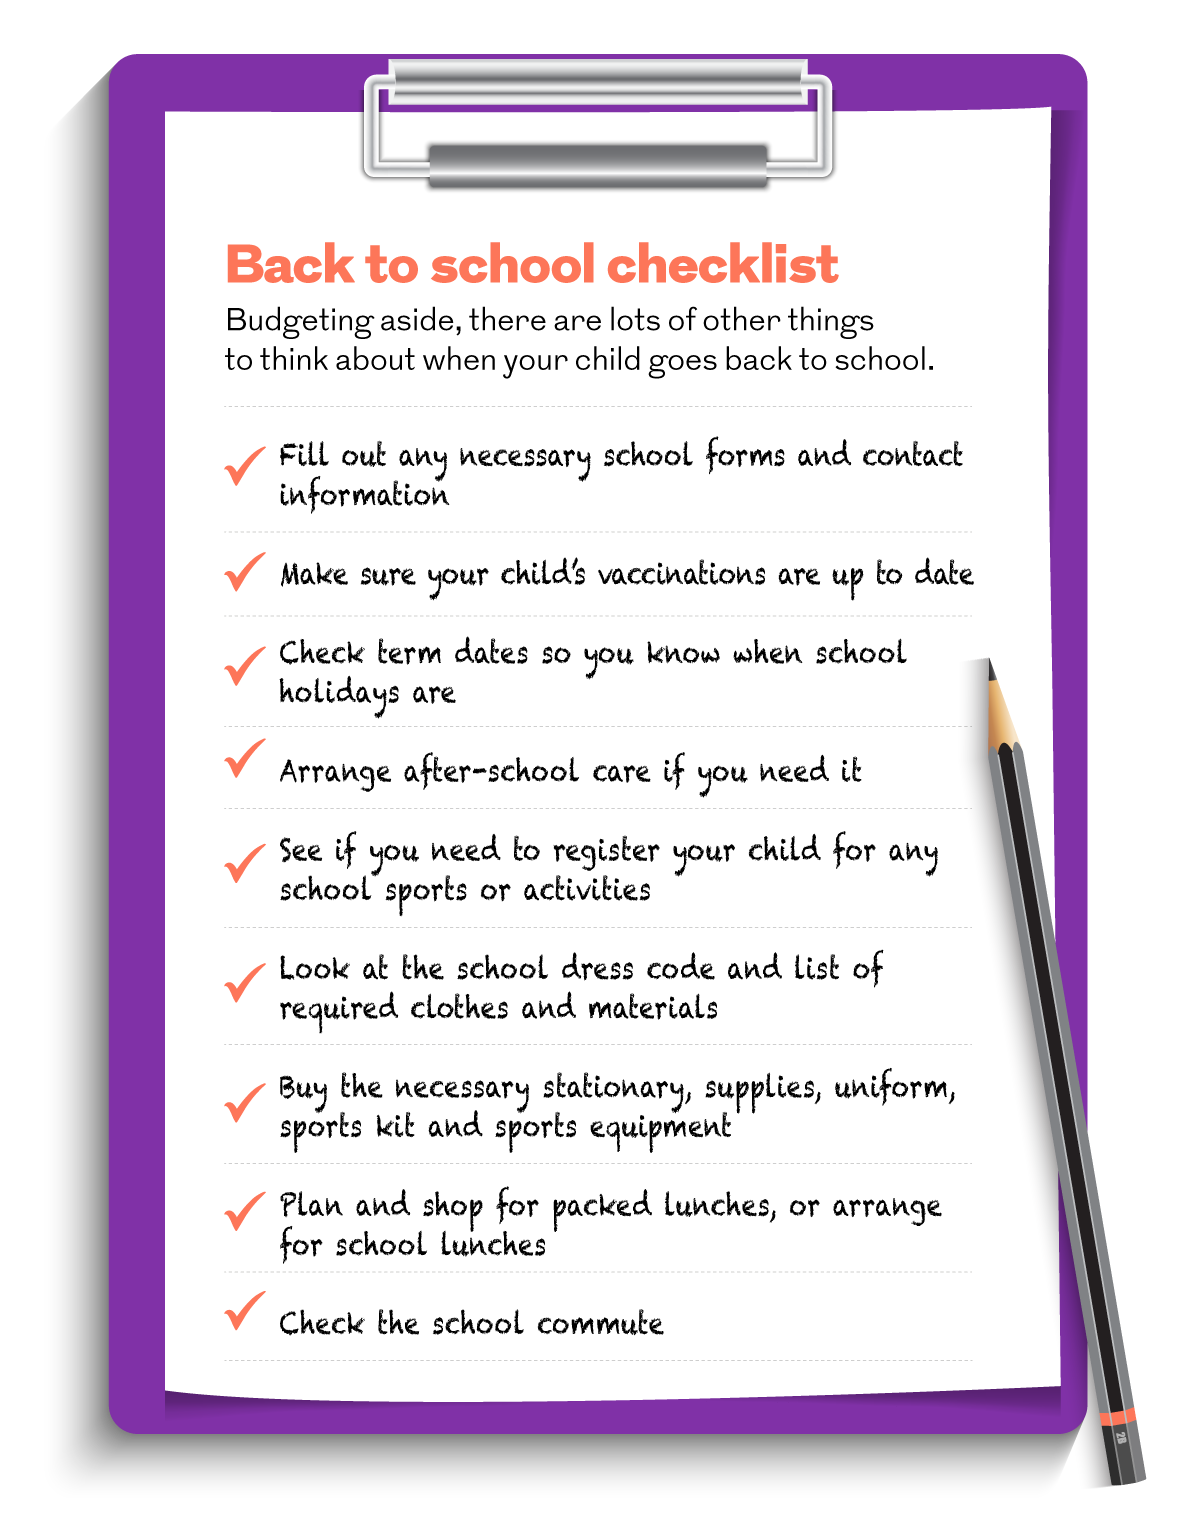 Back to school checklist. This image is an infographic and has alternative text available if you are using a screen reader.